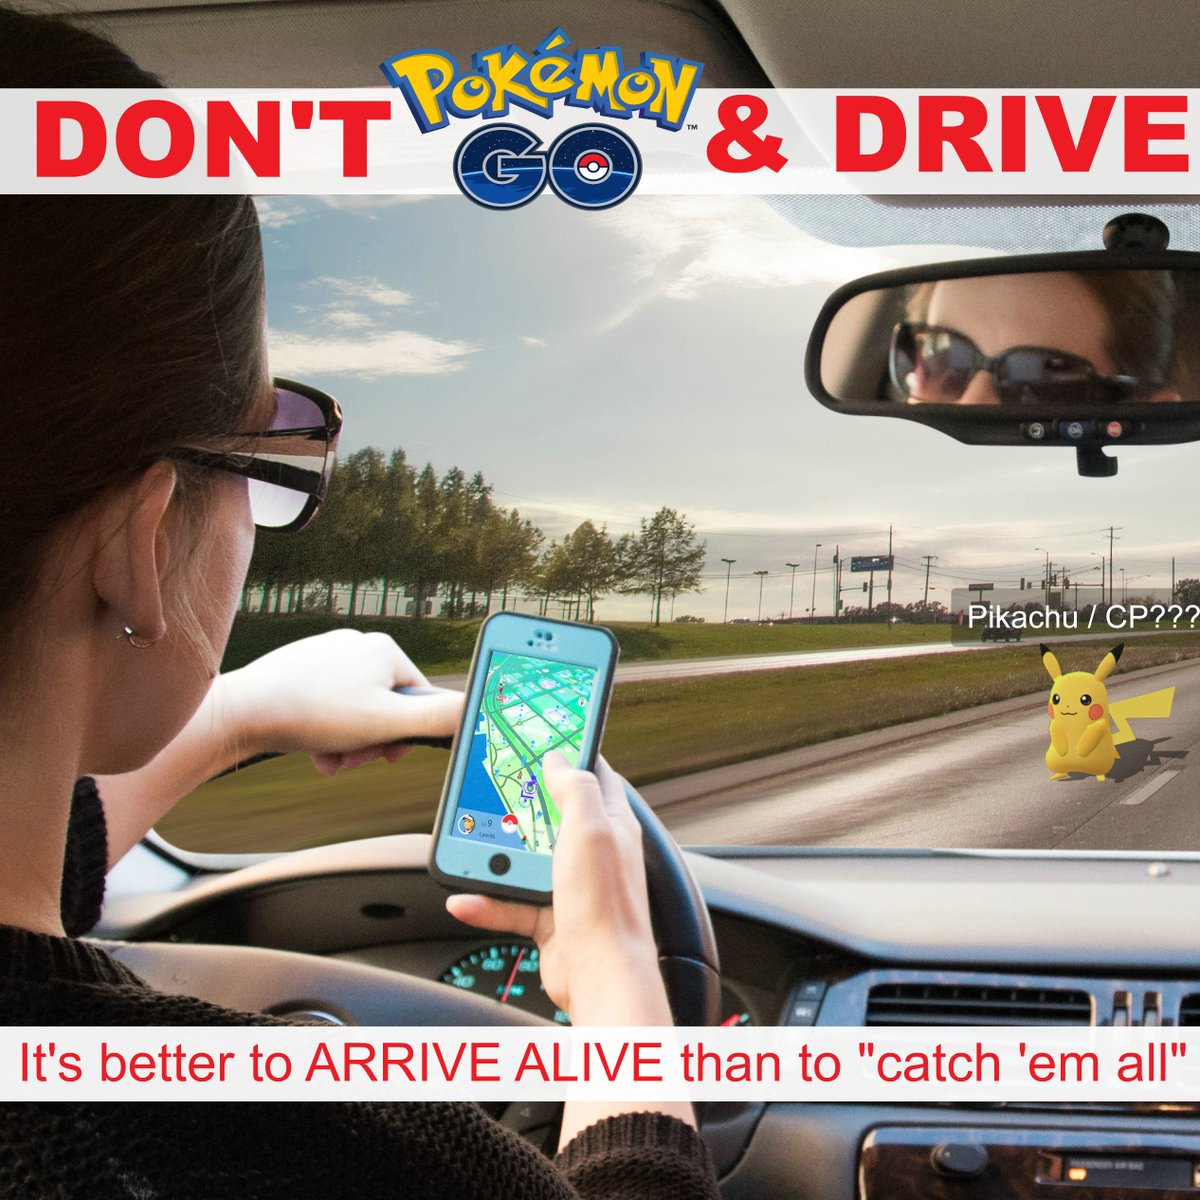 """Focus on the road not your apps! It's better to arrive alive than """"catch 'em all."""" #PokemonGO #ArriveAlive https://t.co/gFCXoAKeMd"""